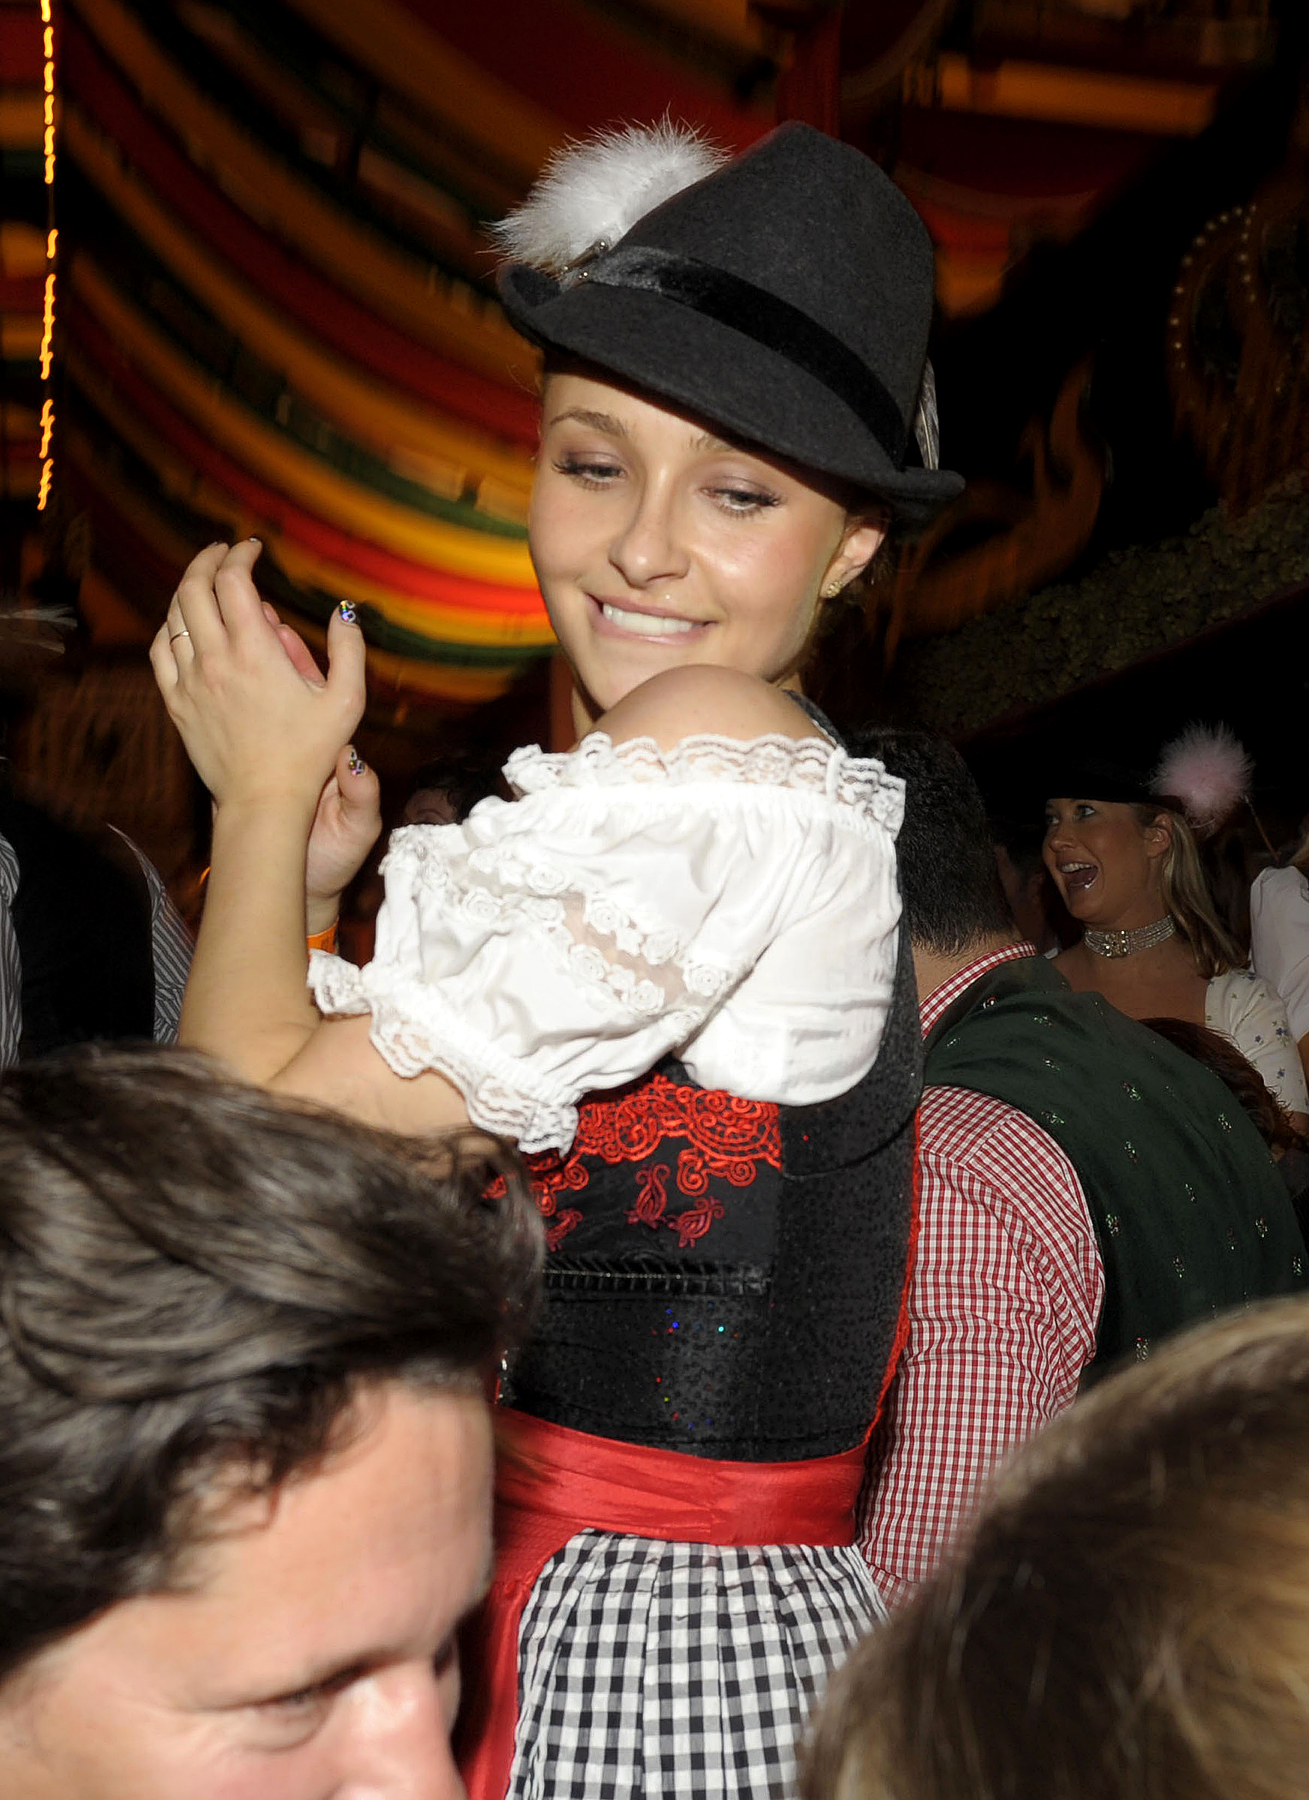 Hayden Panettiere Dons Dirndl at Oktoberfest (PHOTOS)